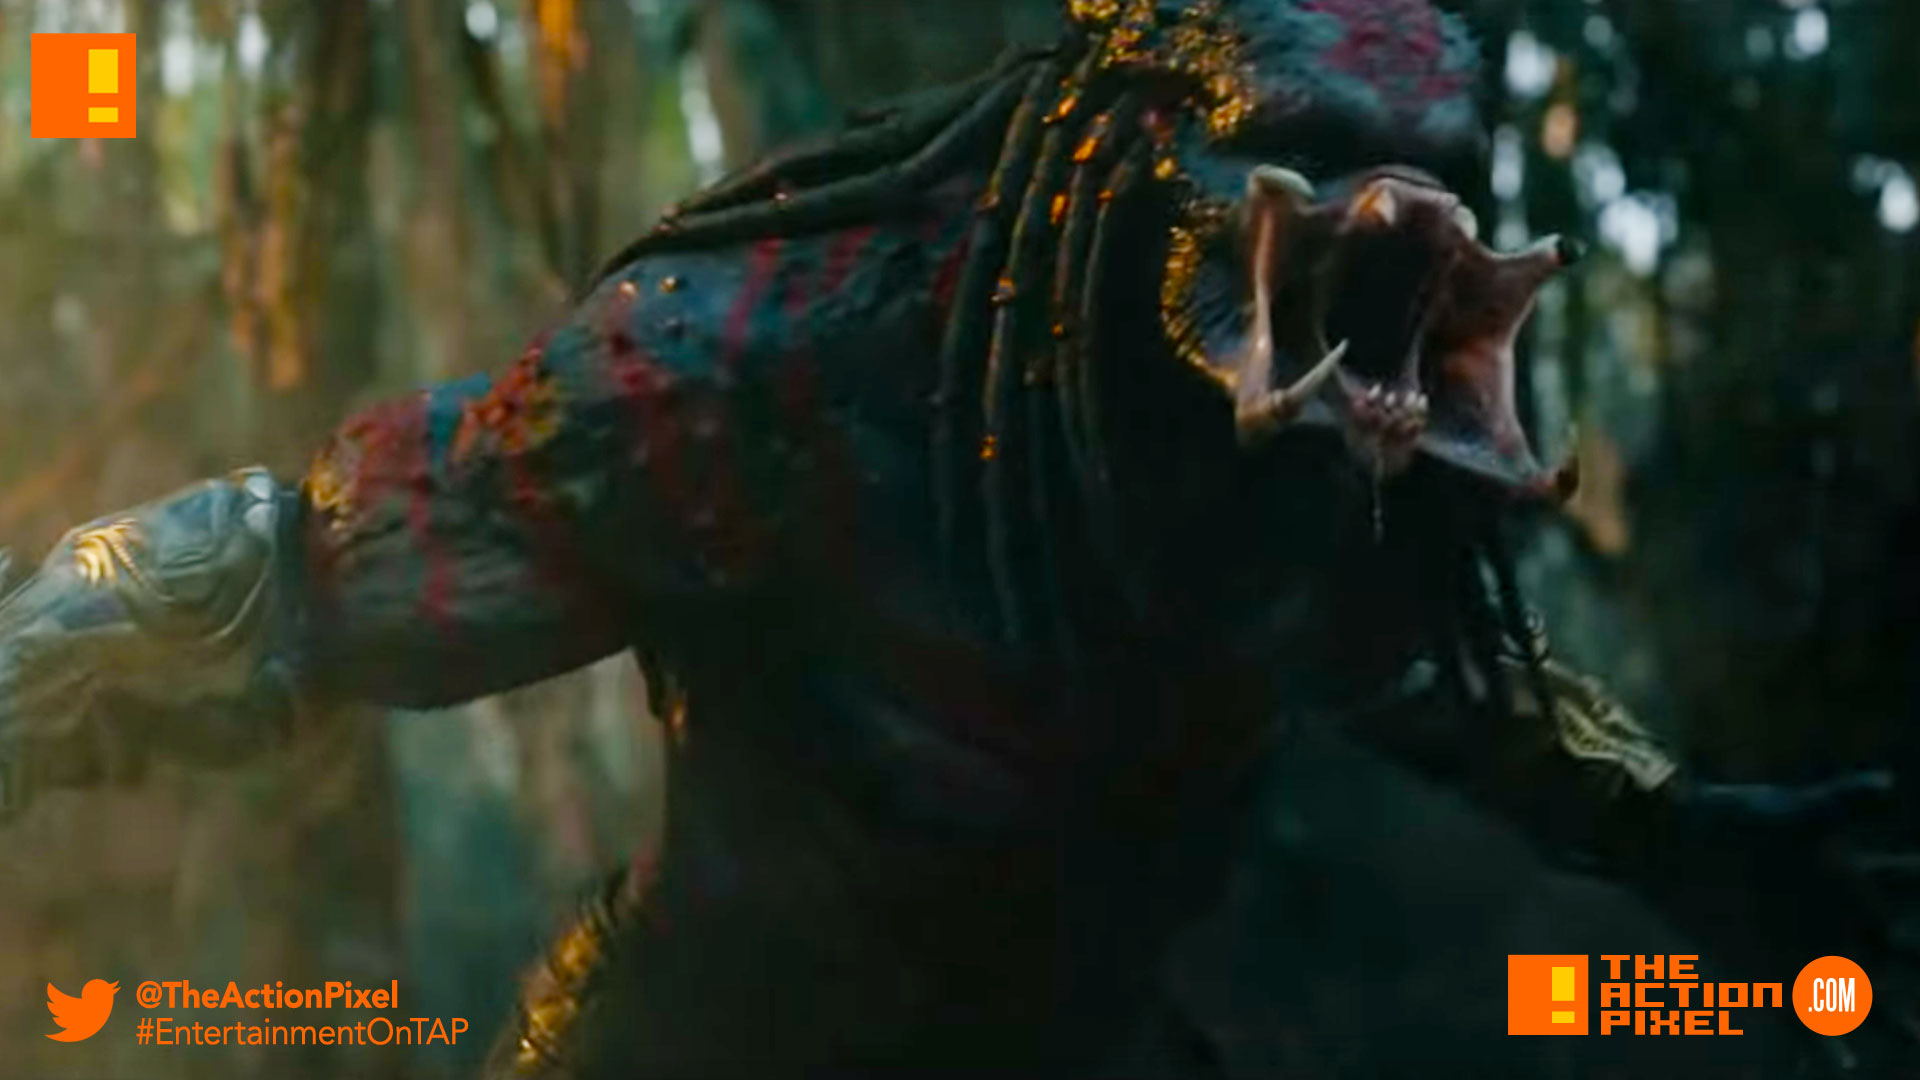 the predator, predator, 20th century fox, Sterling K. Brown, Trevante Rhodes, Boyd Holbrook, Jacob Tremblay, Olivia Munn, Keegan Michael-Key, shane black,the predator, official trailer